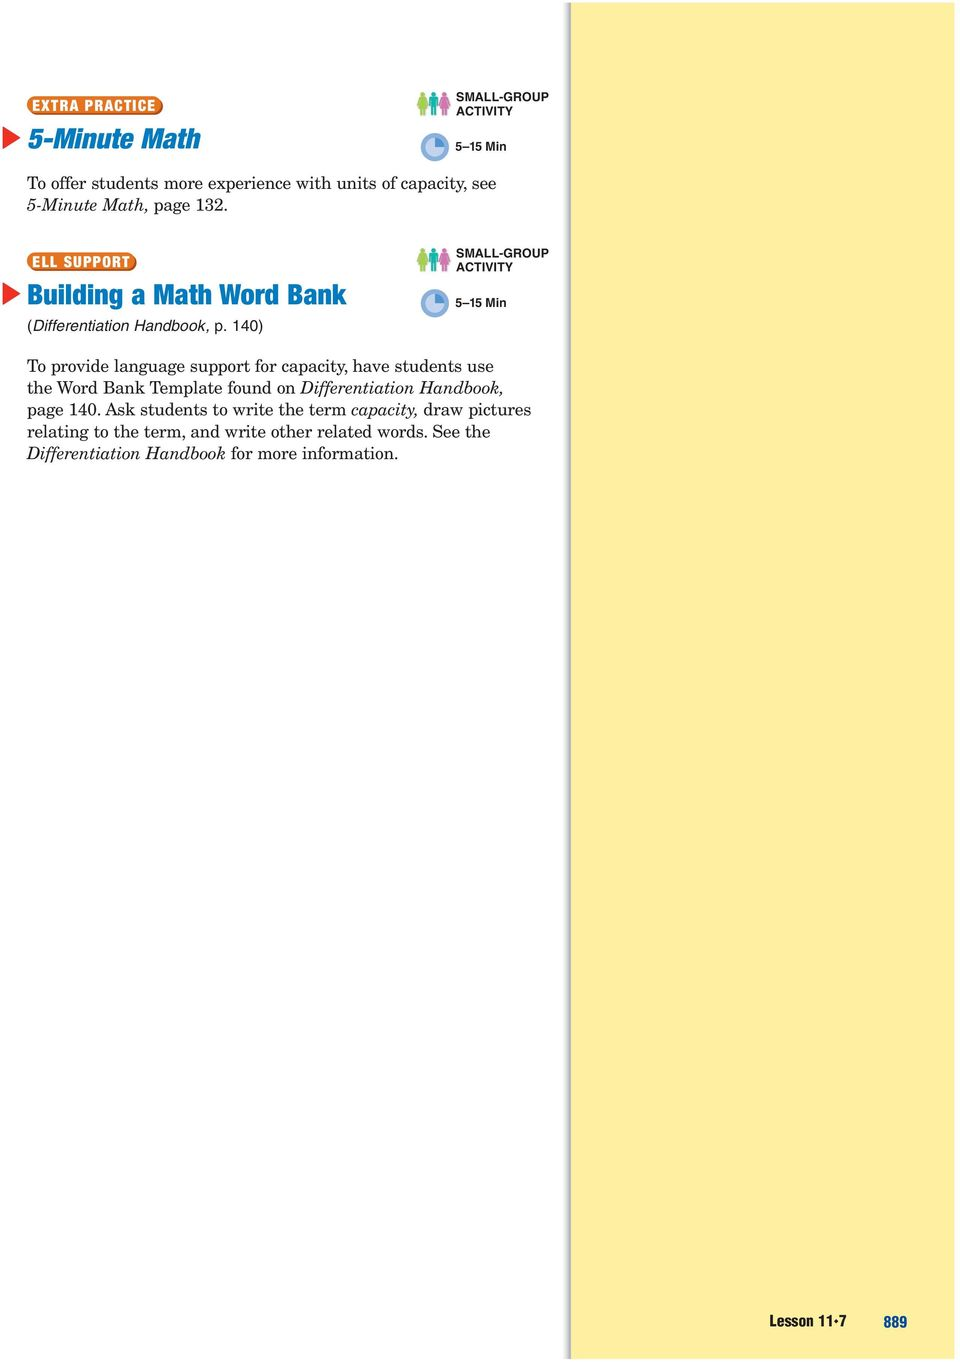 140) 5 15 Min To provide language support for capacity, have students use the Word Bank Template found on Differentiation